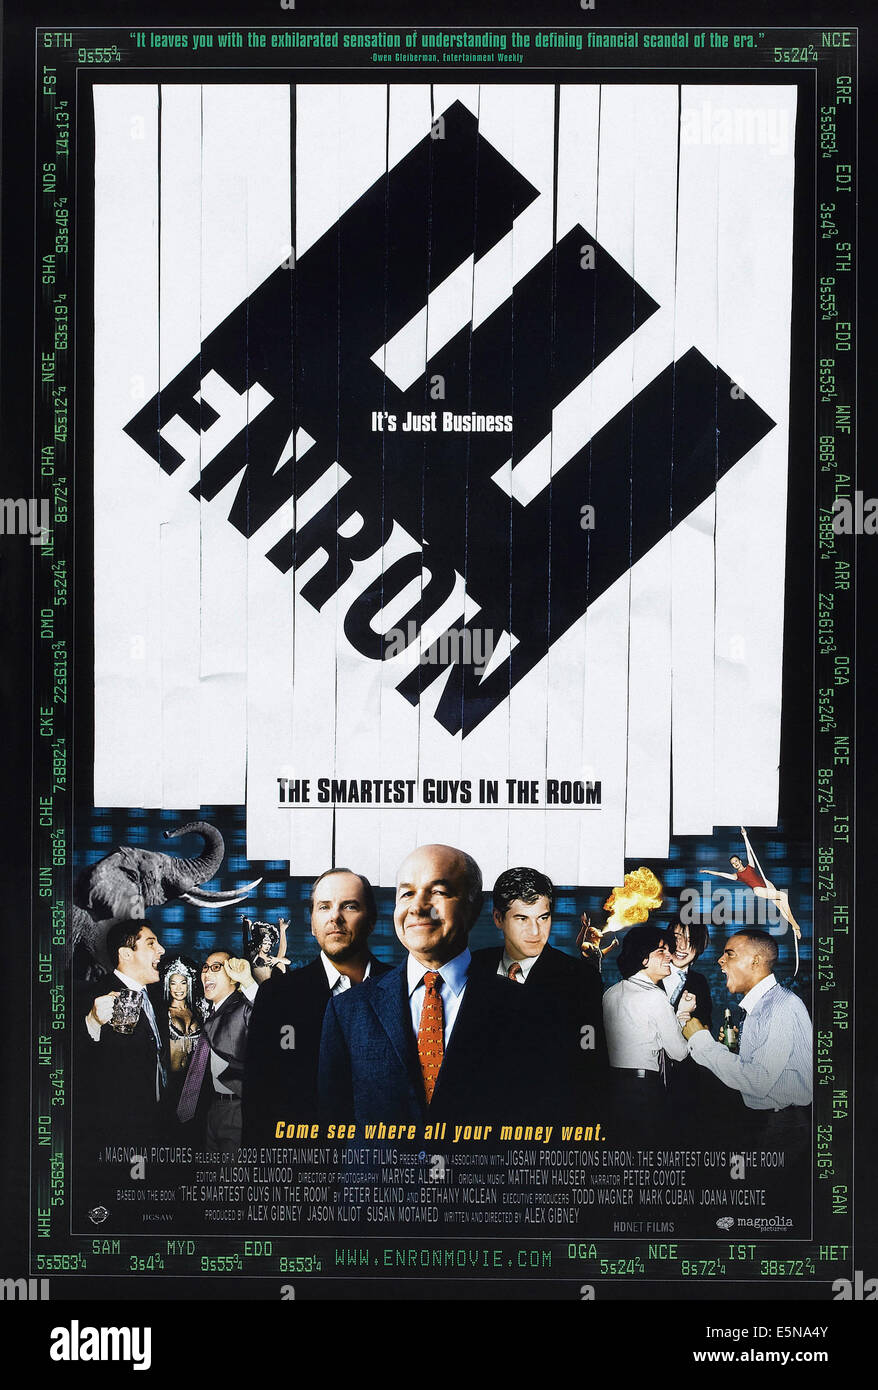 Enron. The. Smartest. Guys. In. The. Room. 2005. Limited. 1080p. Bluray. X264.